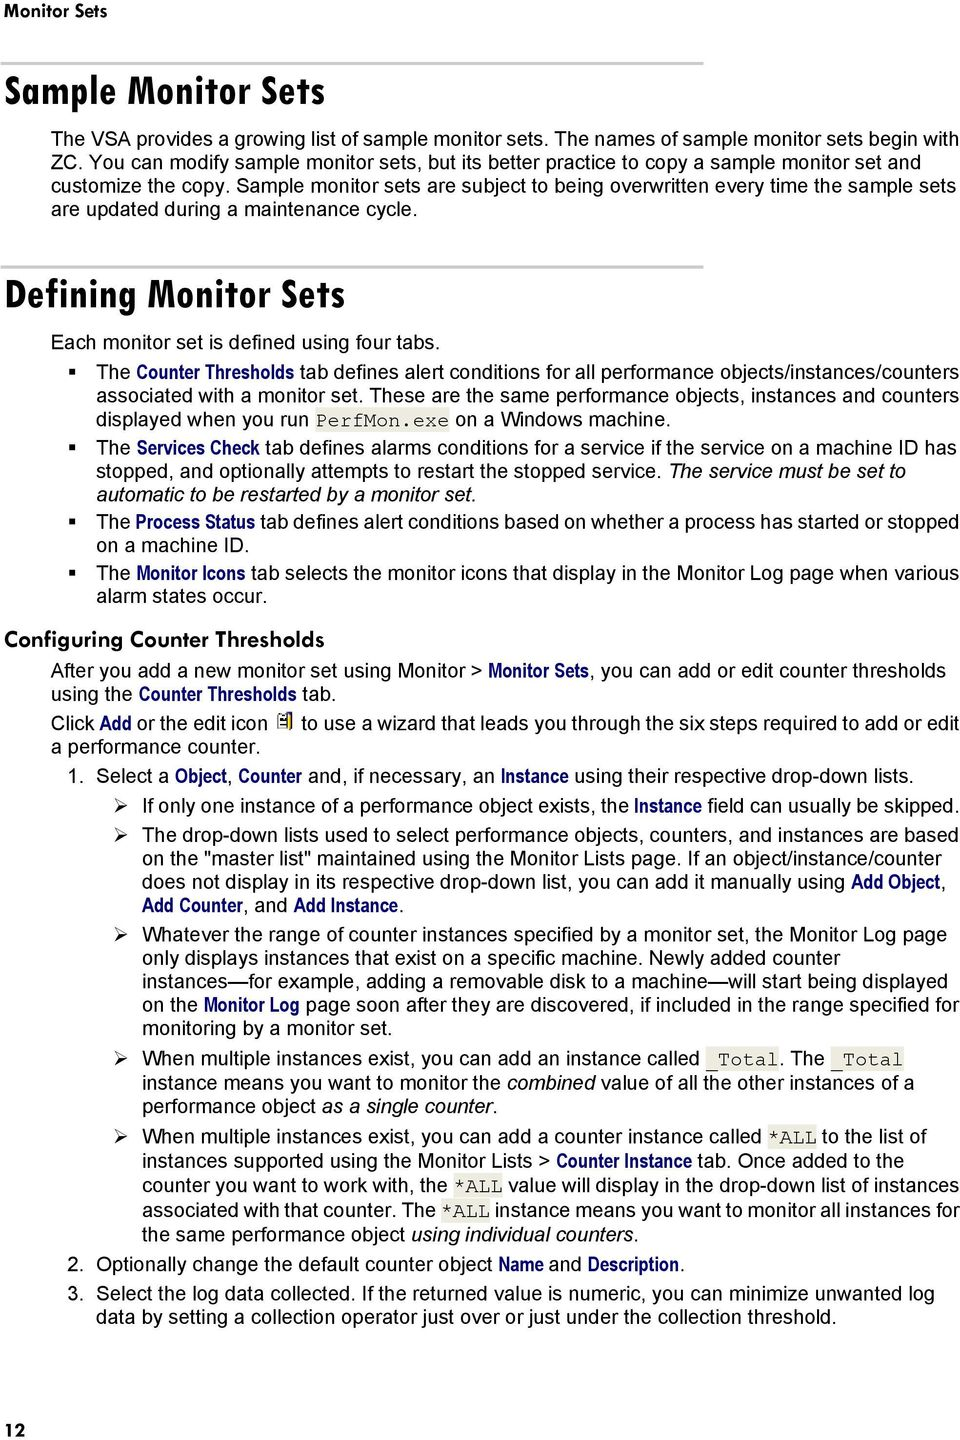 Sample monitor sets are subject to being overwritten every time the sample sets are updated during a maintenance cycle. Defining Monitor Sets Each monitor set is defined using four tabs.